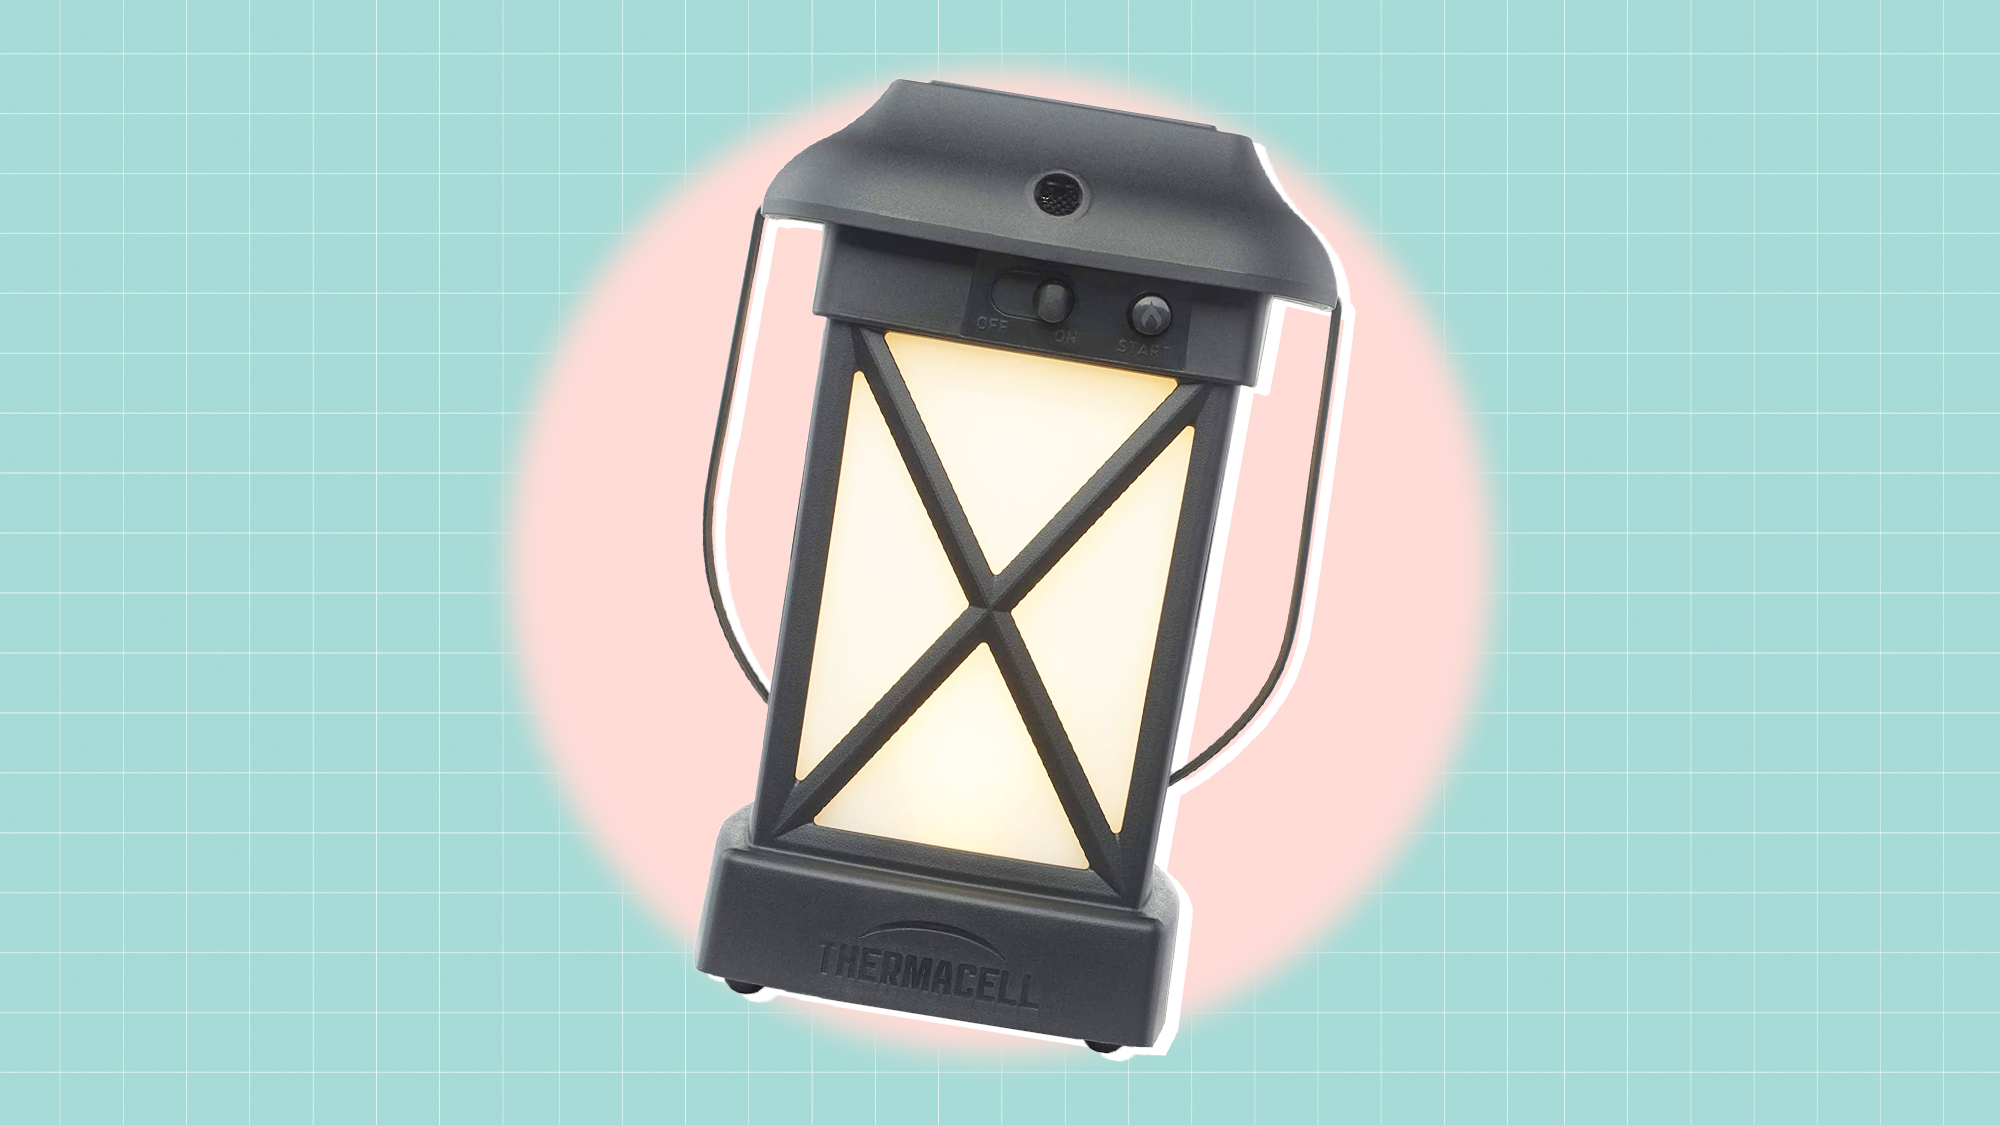 Thermacell Cambridge Mosquito Repellent Lantern; No Spray Mosquito Repellent For Patios; Includes 12-Hours of Protection; DEET-Free, Scent-Free, No Flame Citronella Candle Alternative